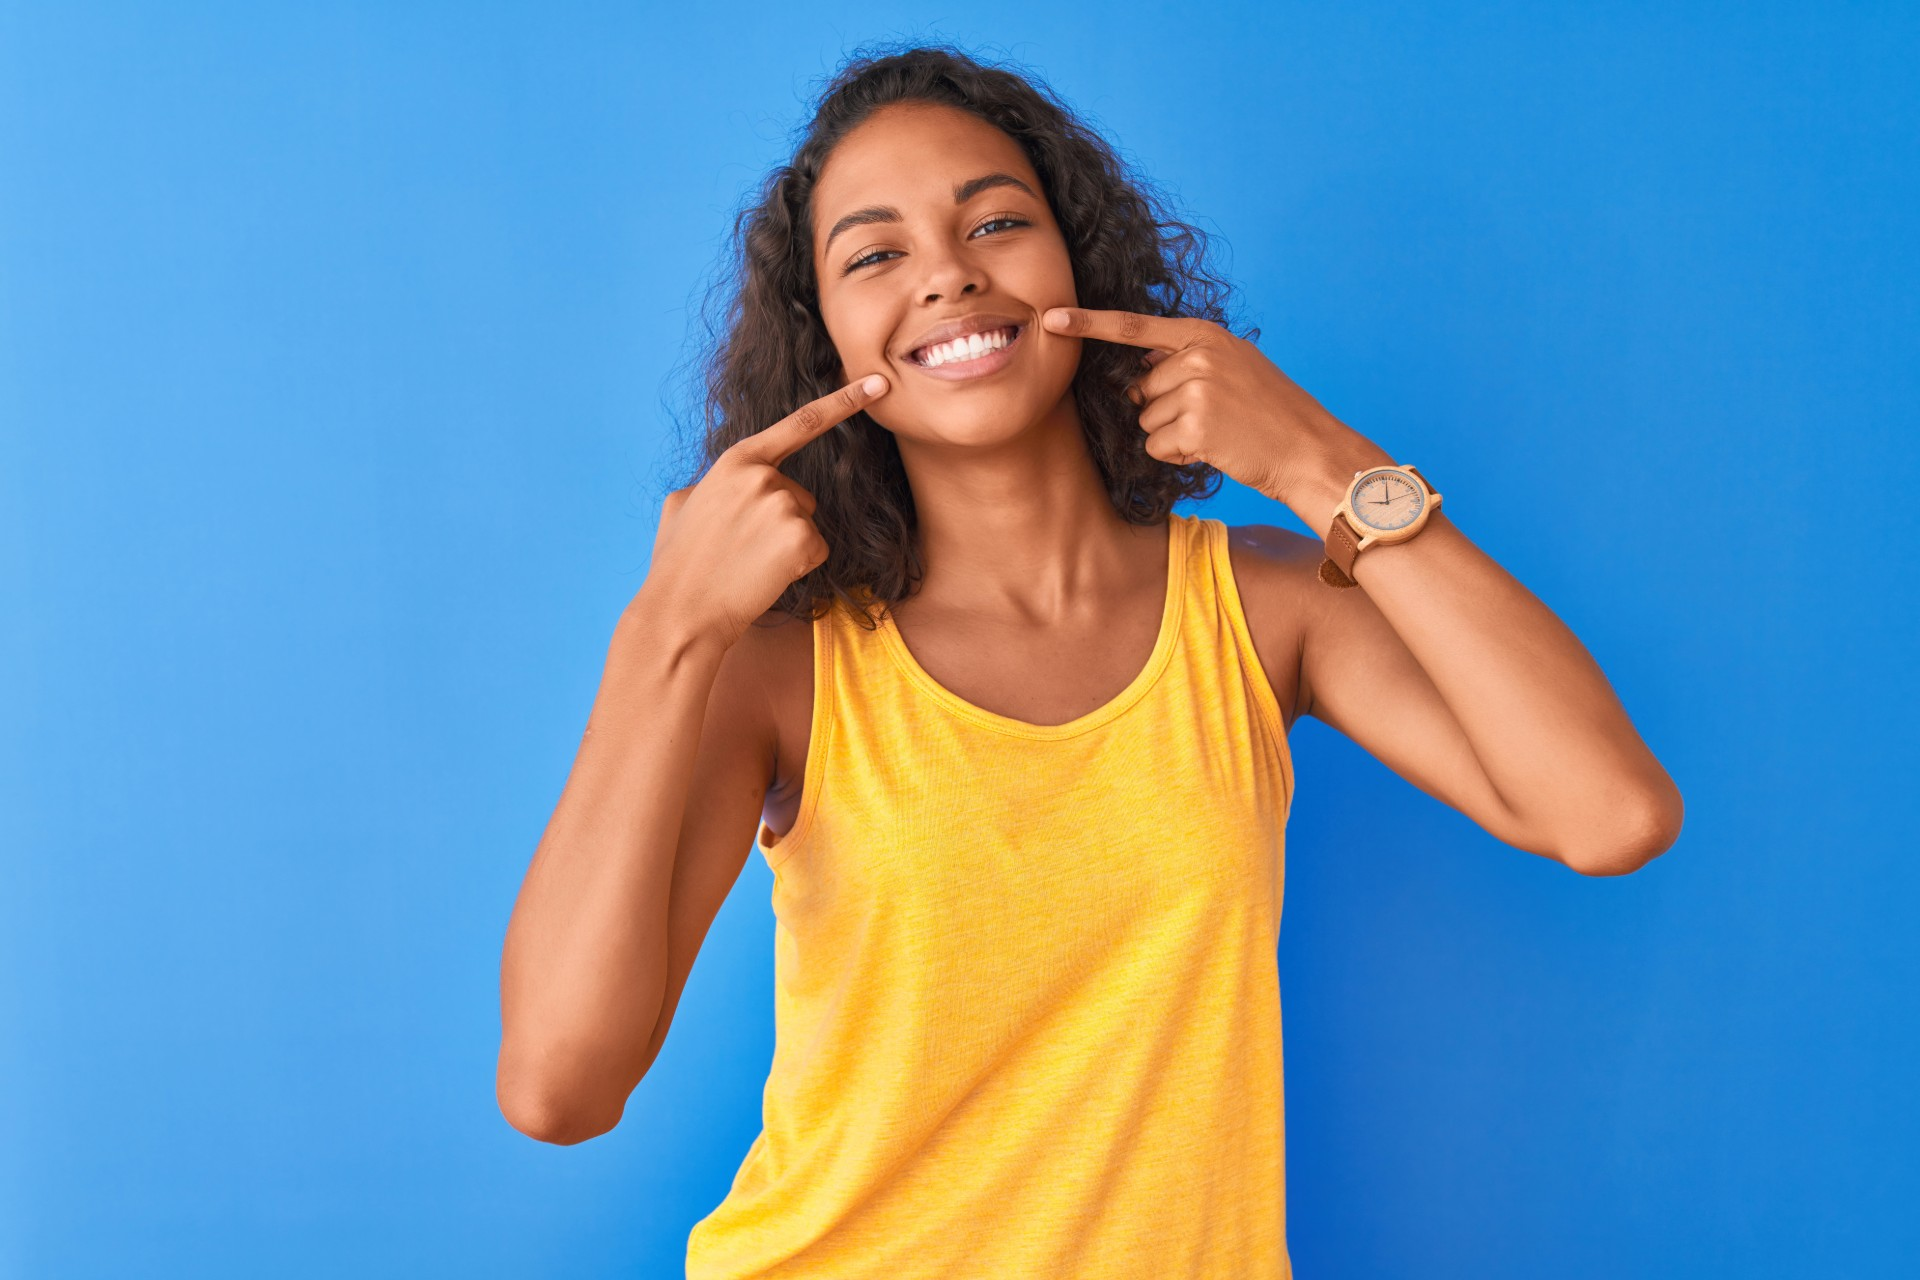 Girl standing against a blue wall, while showing off her new smile.